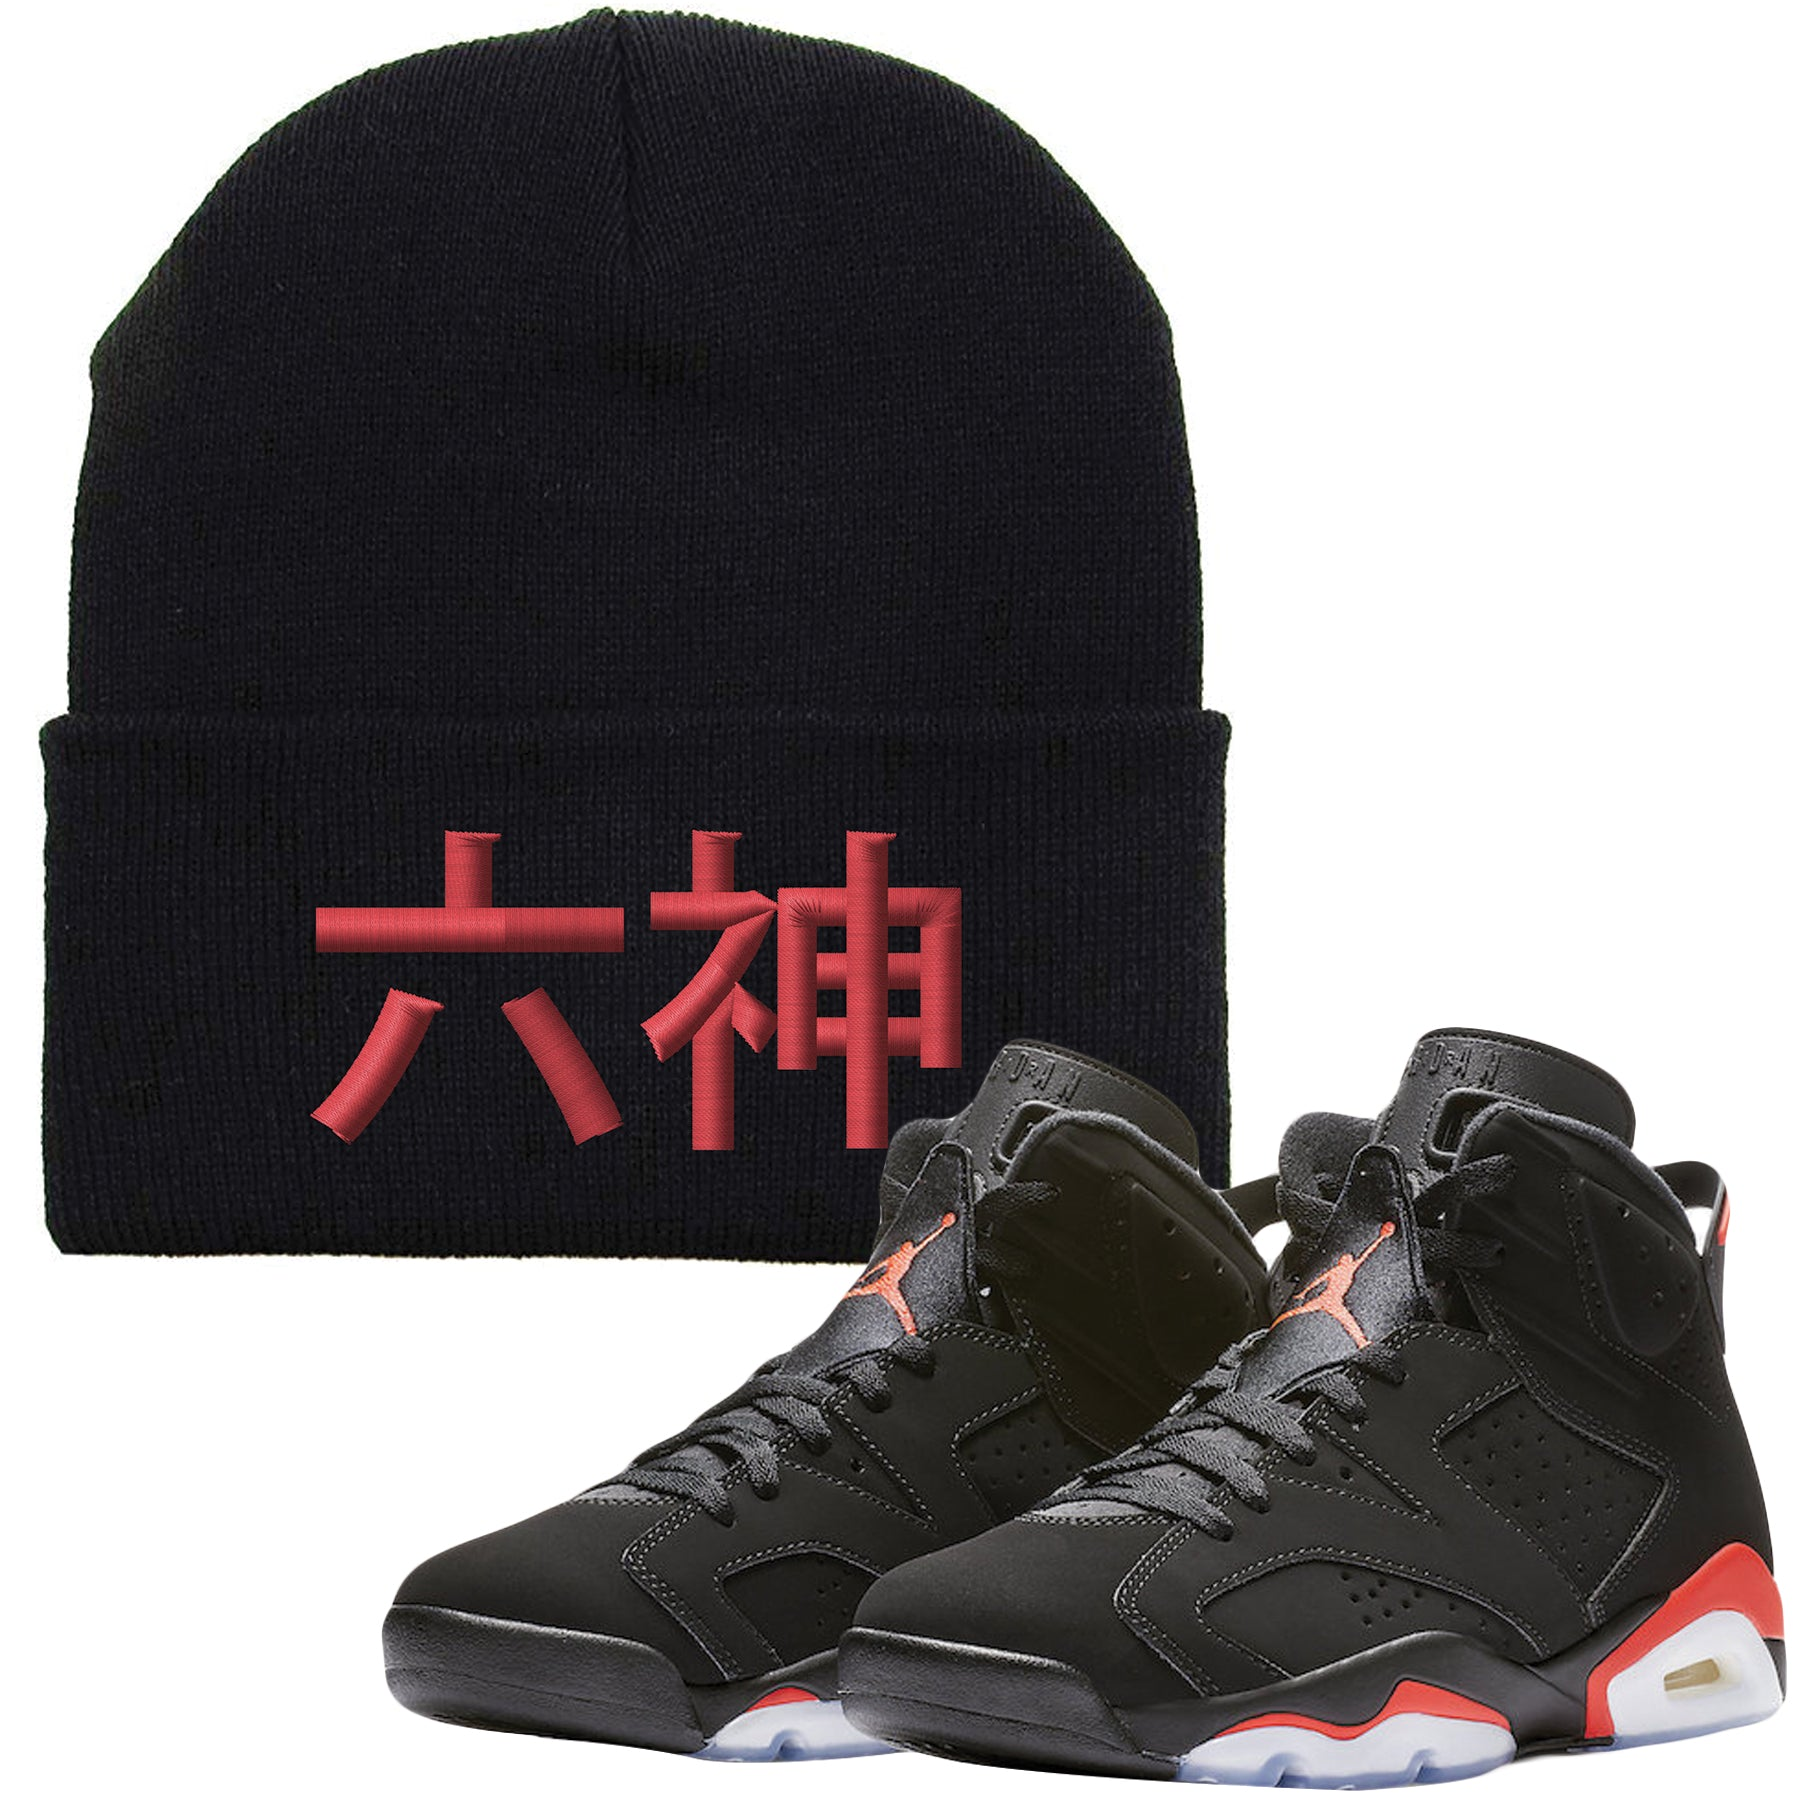 1d95fafba5ca52 The Jordan 6 Infrared Beanie is custom designed to perfectly match the  retro Jordan 6 Infrared